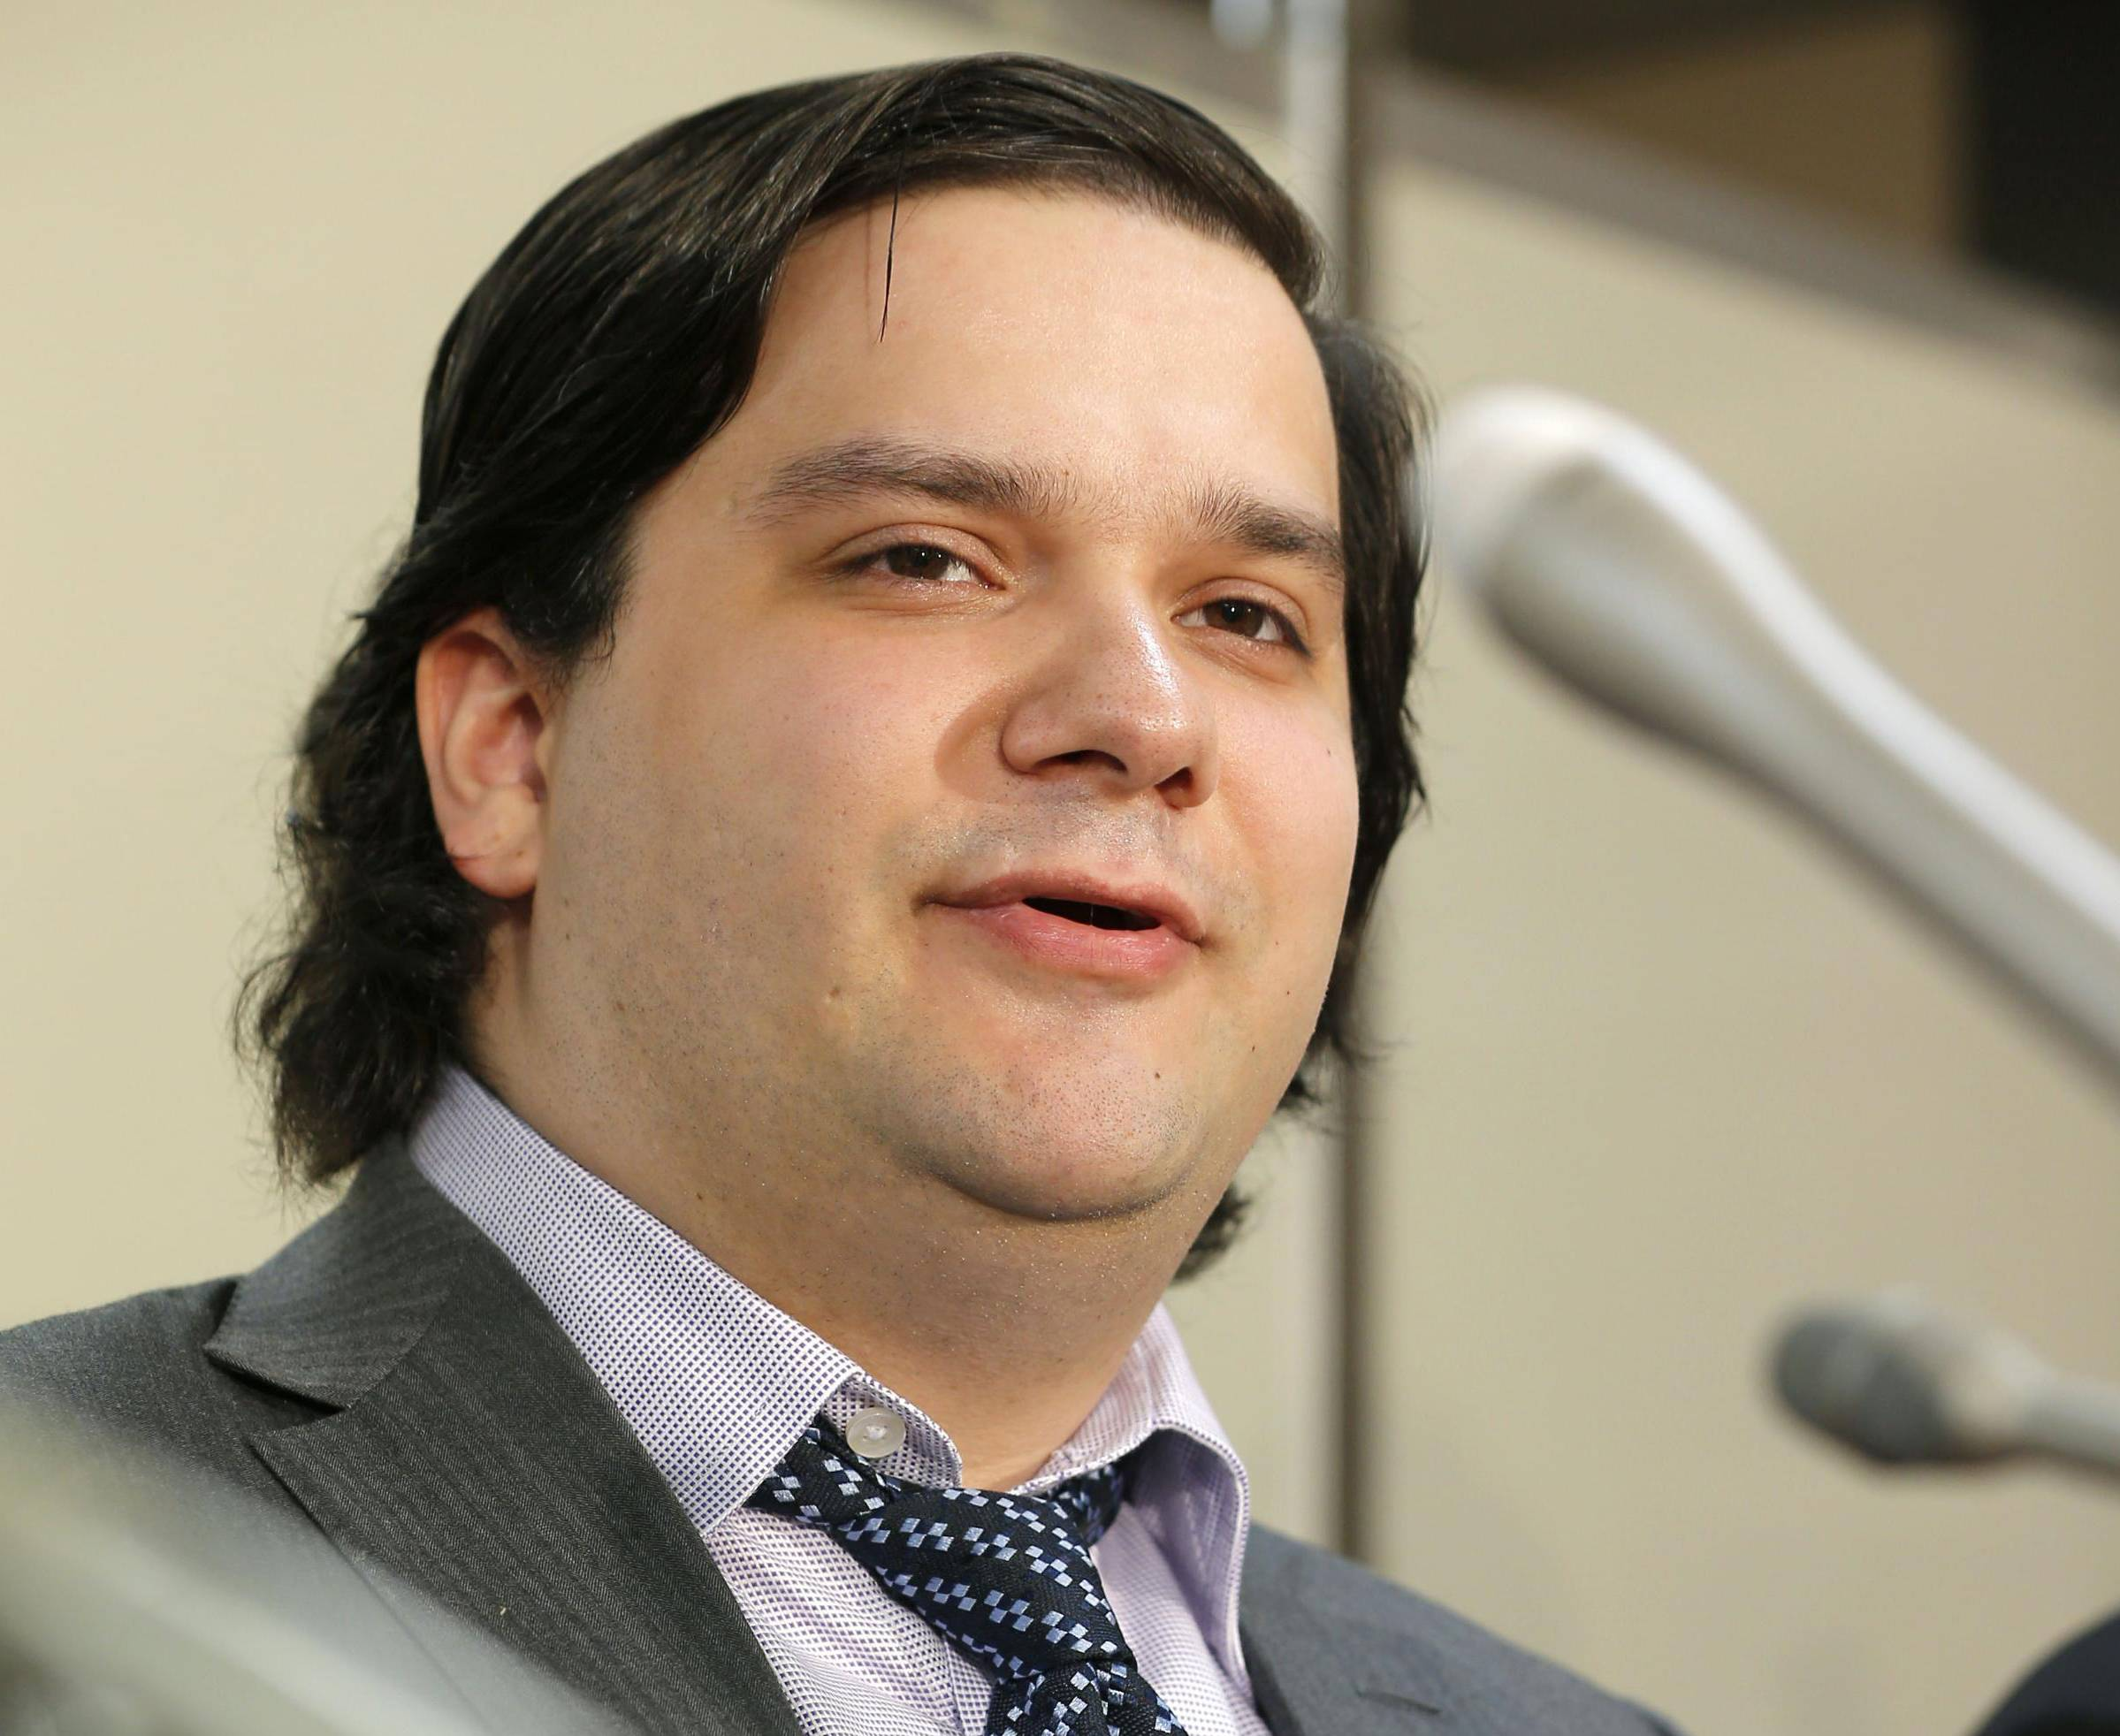 Mt. Gox CEO Mark Karpeles speaks at a news conference Friday at the Justice Ministry in Tokyo.